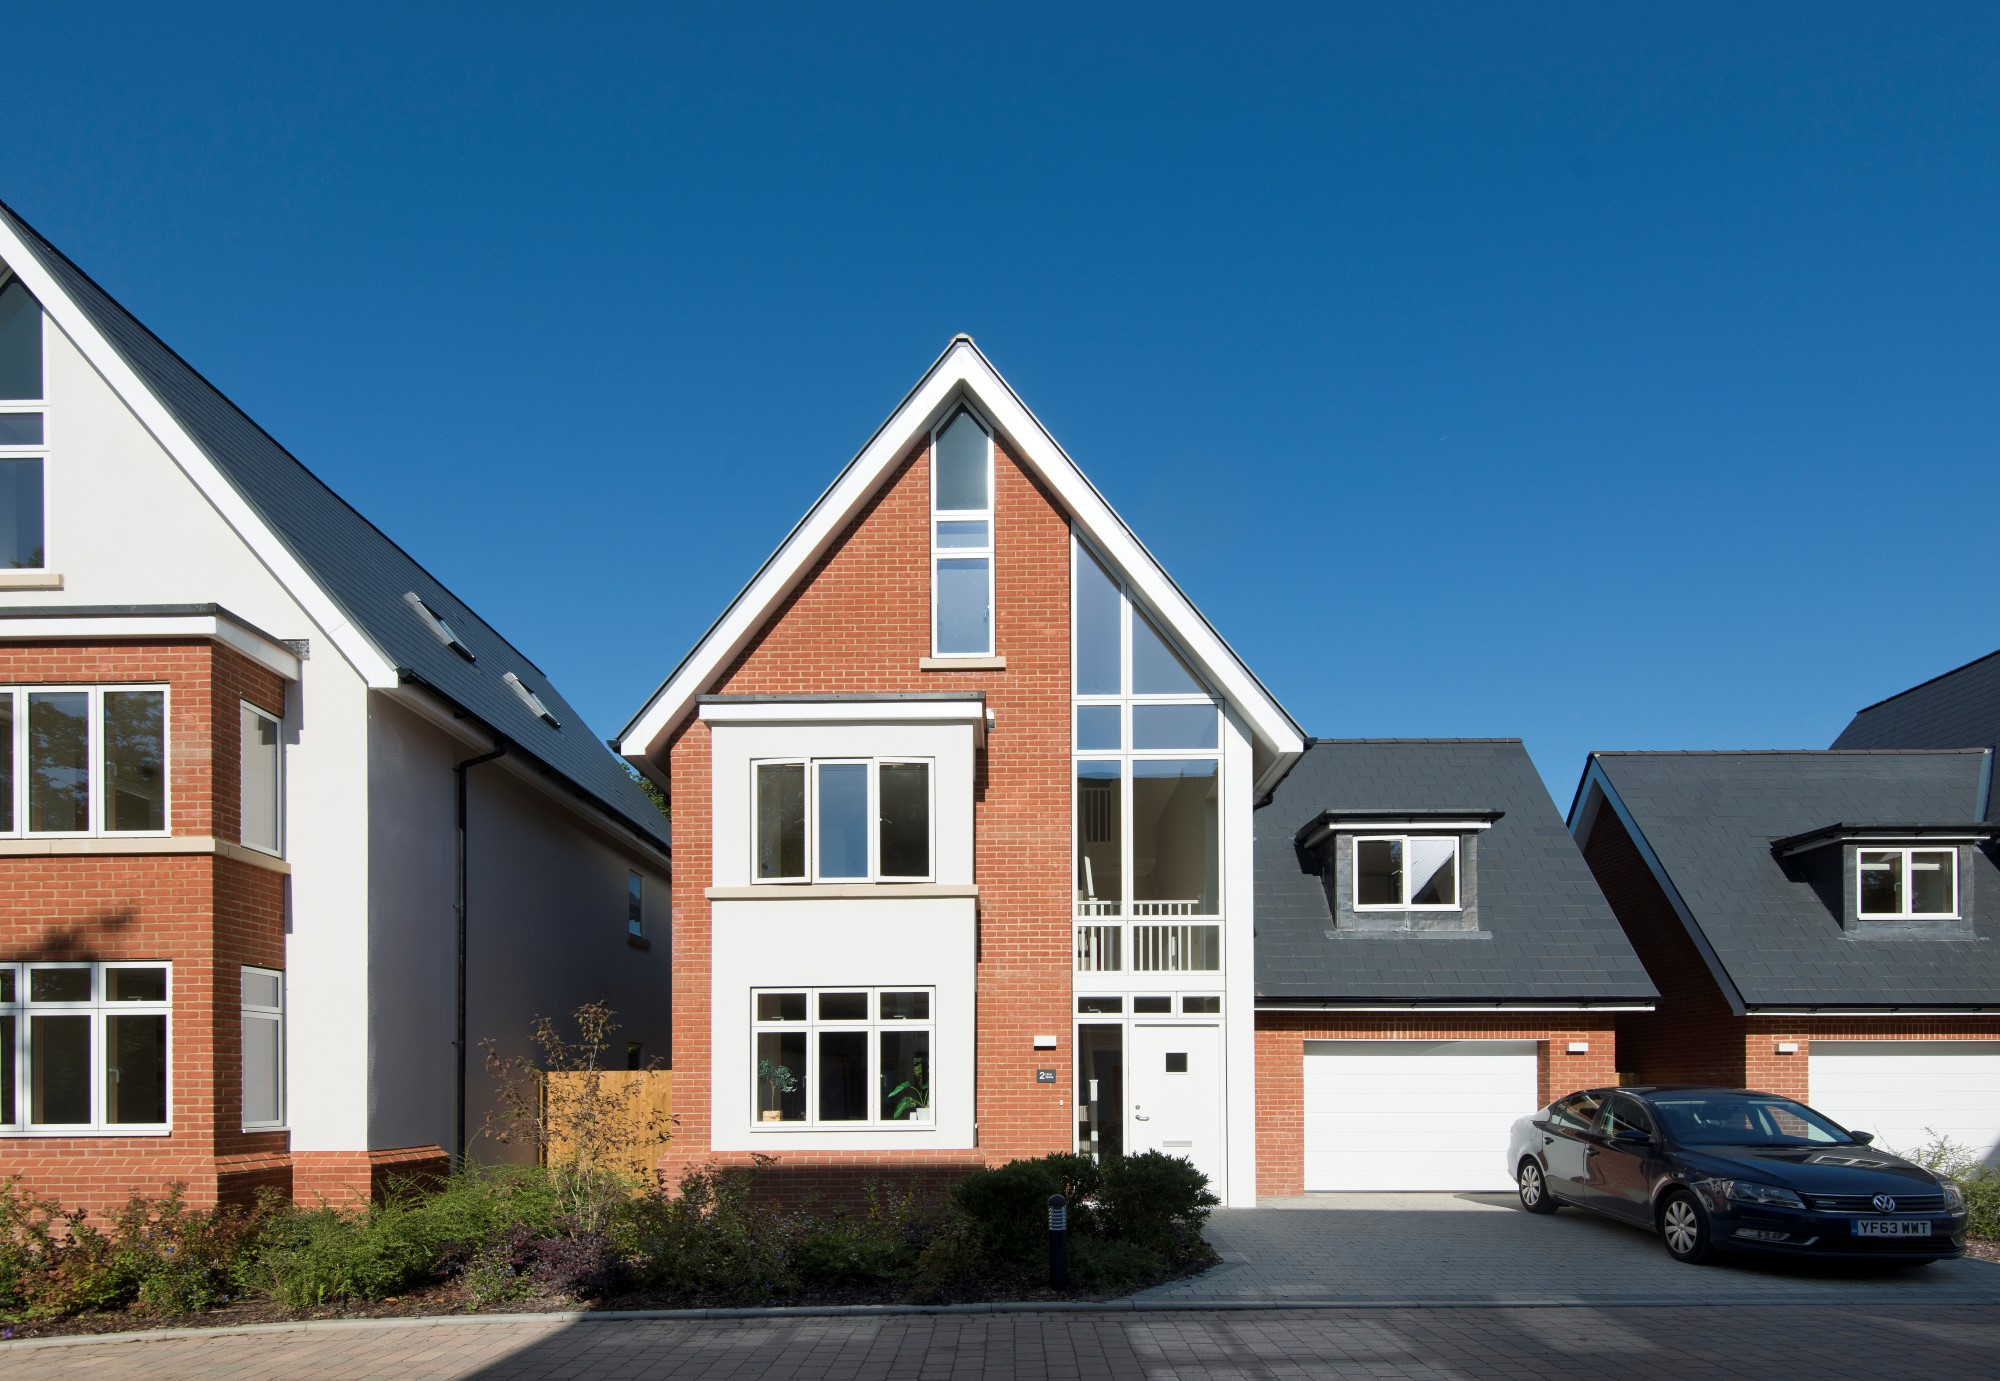 Award winning development of nine detached houses in six house designs